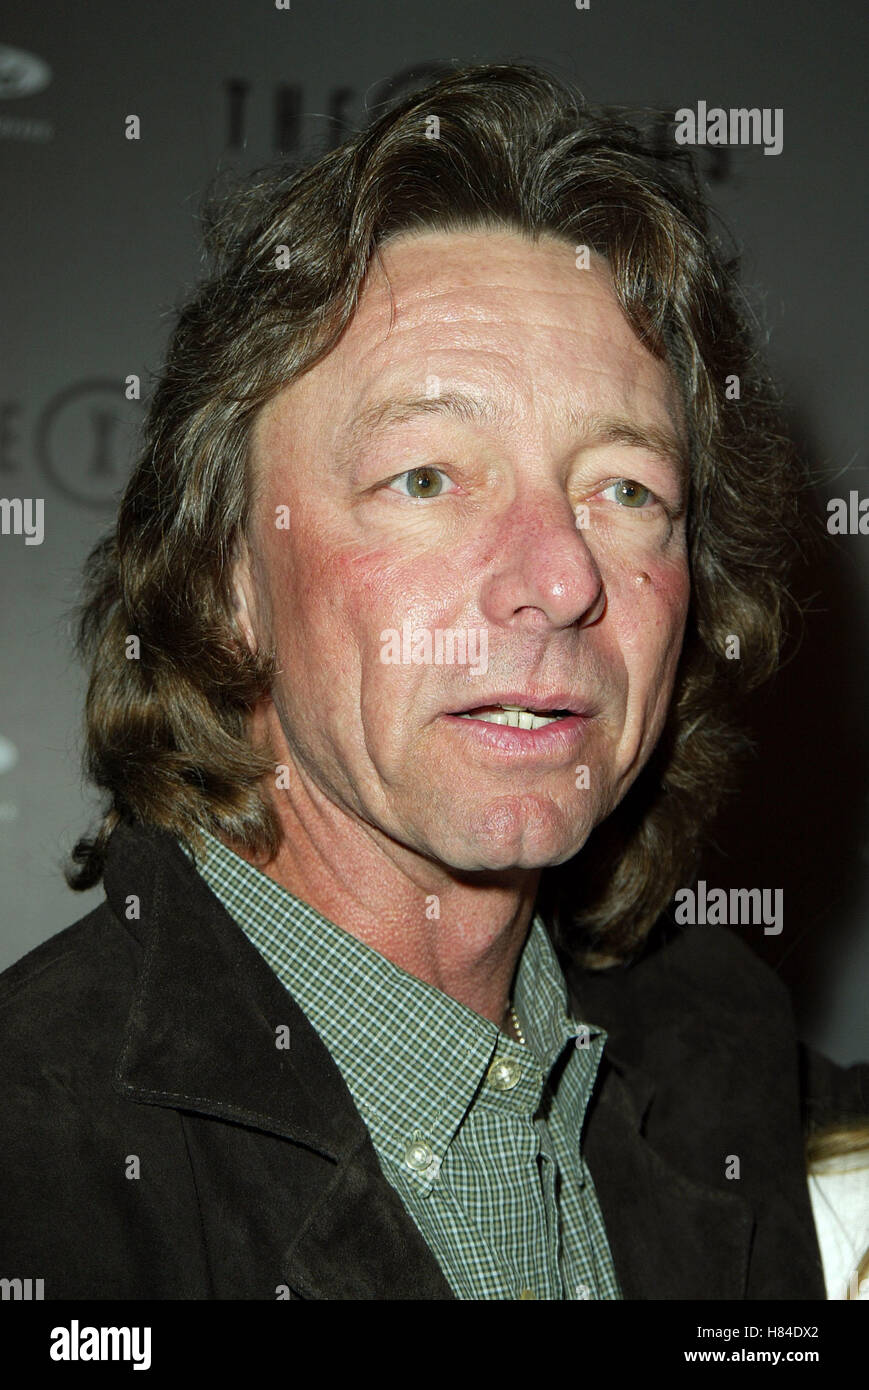 Kim Manners is a director who has shot every third episode of The X-Files and Supernatural 44